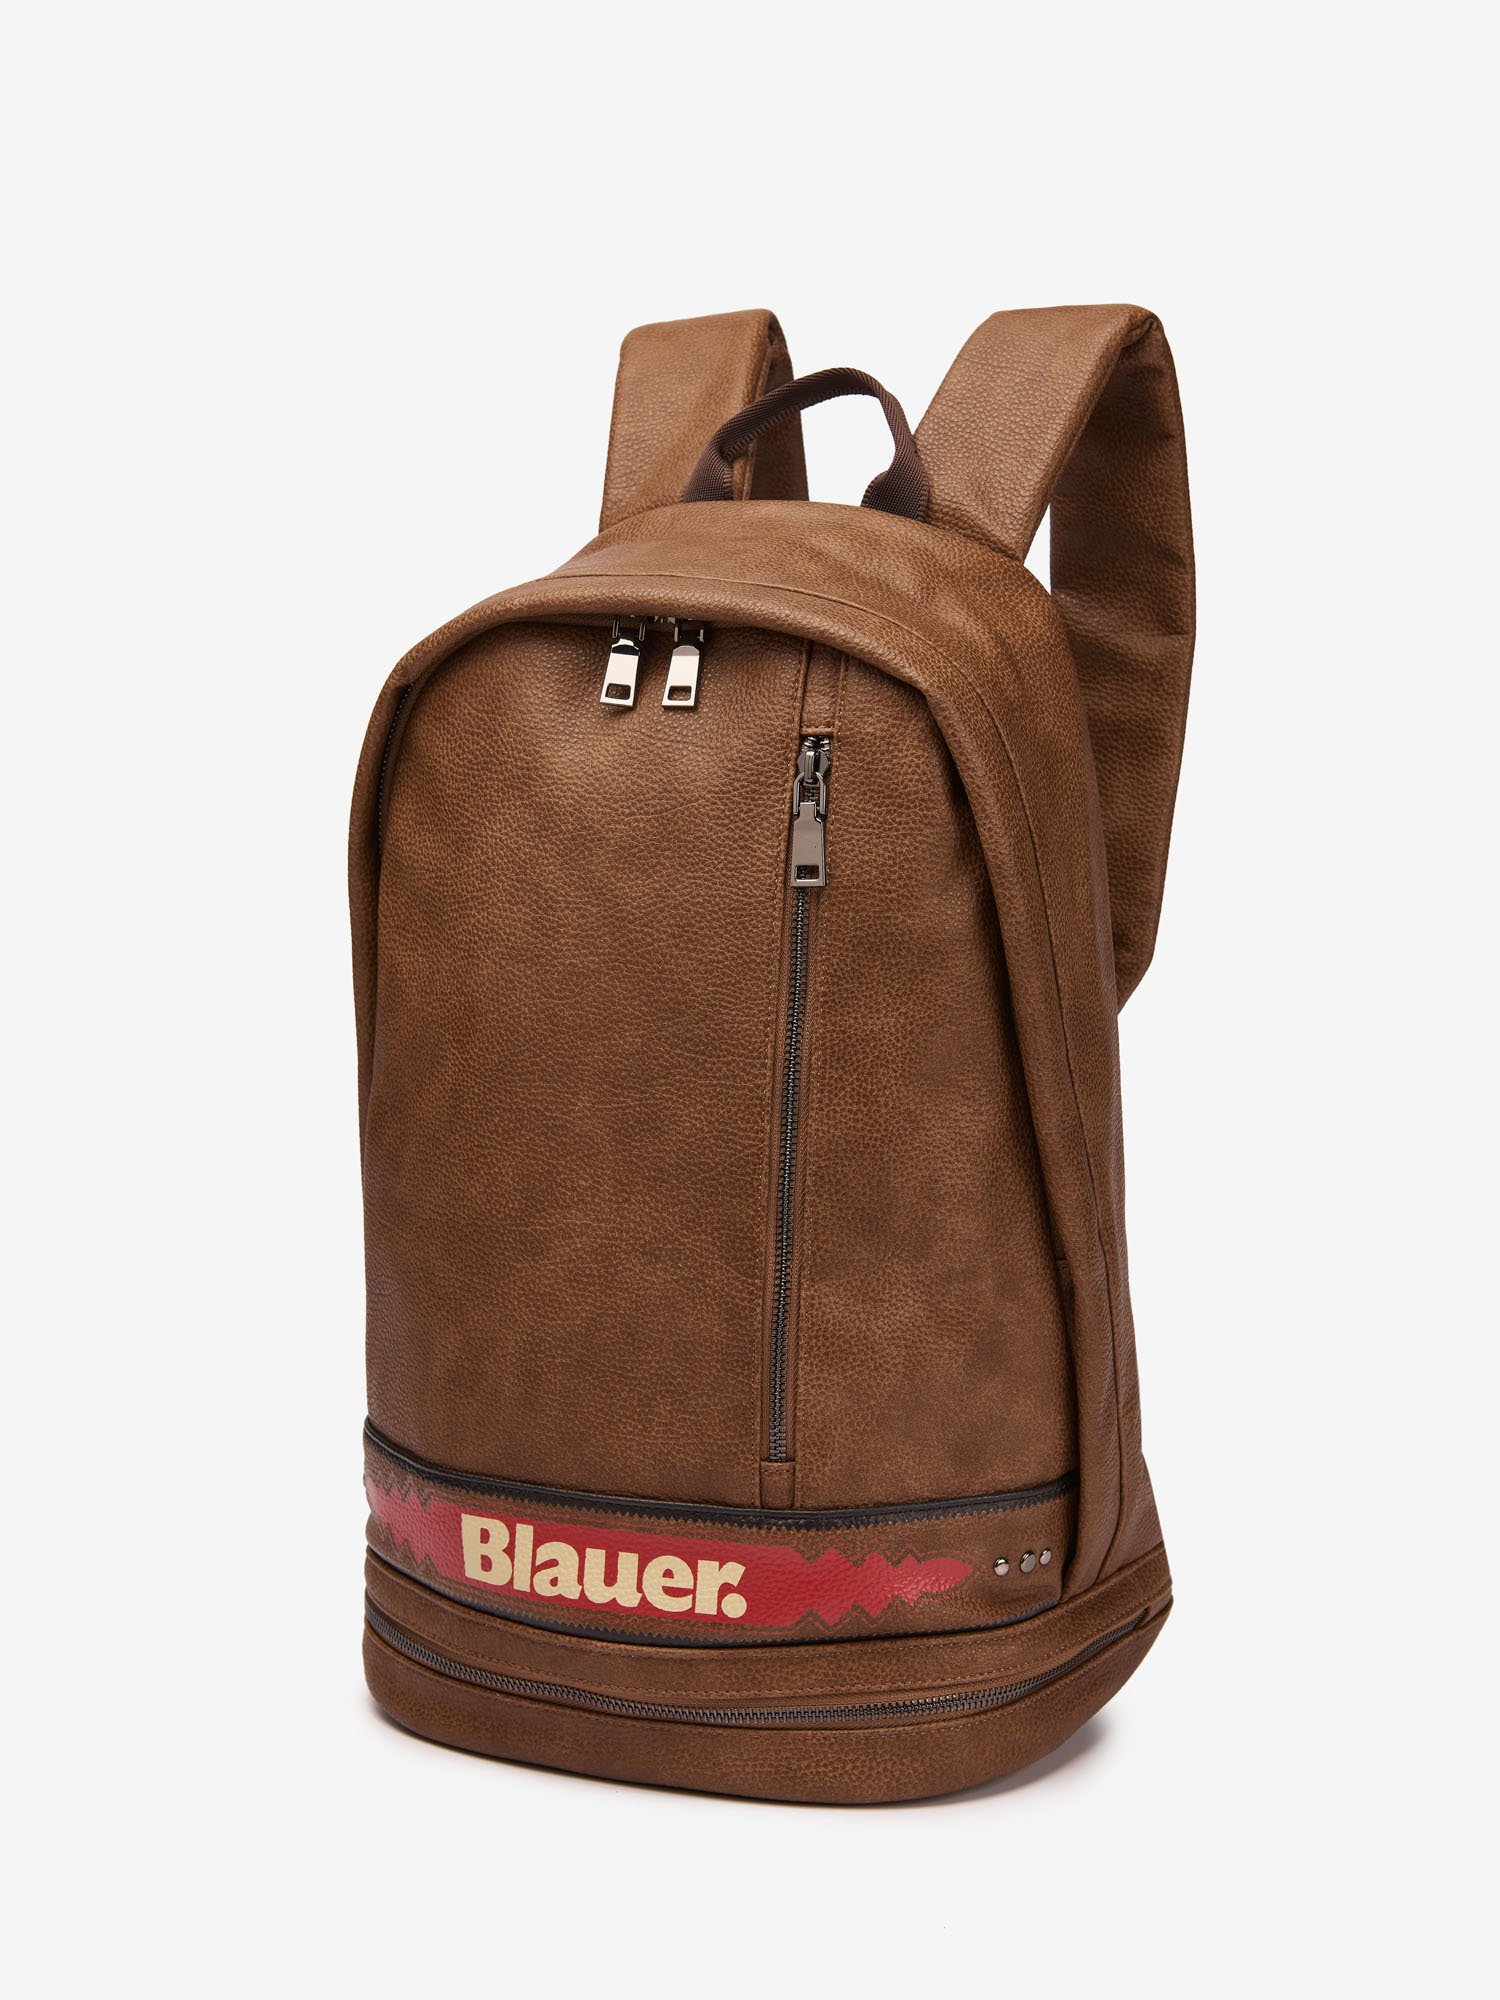 Blauer - MULTI POCKET BACKPACK - Porcino Mushroom - Blauer